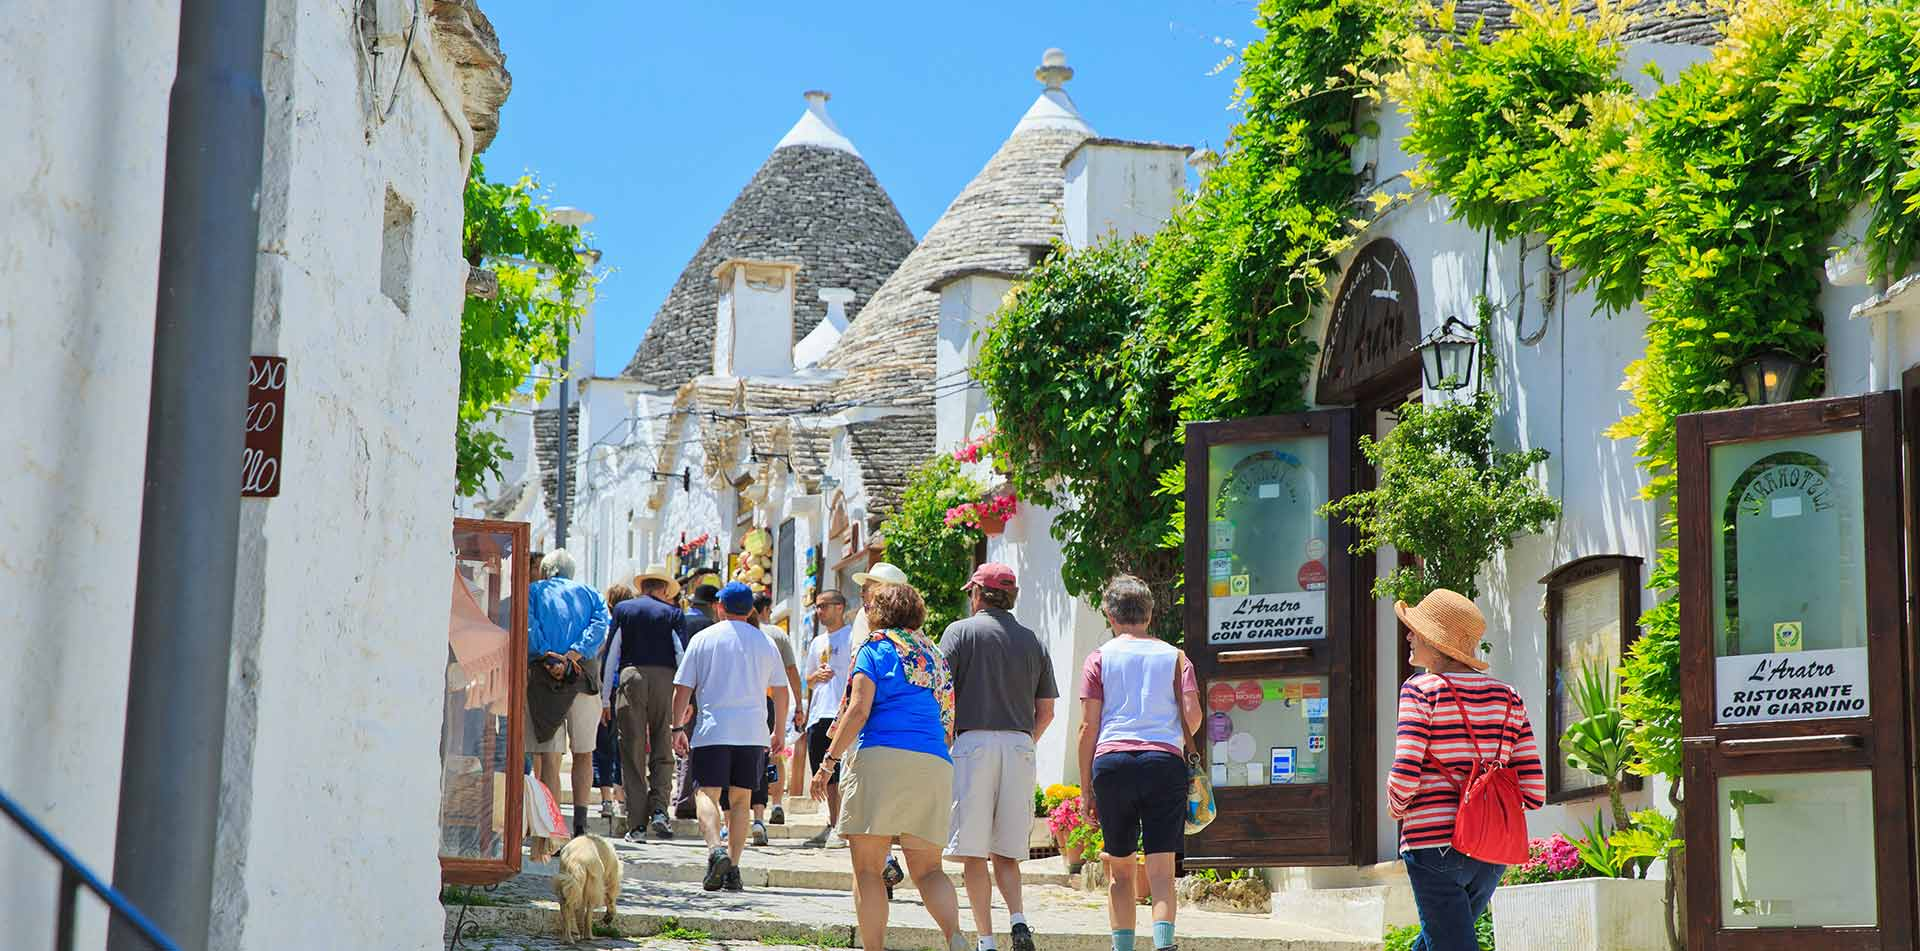 Busy Apulia streets and shops